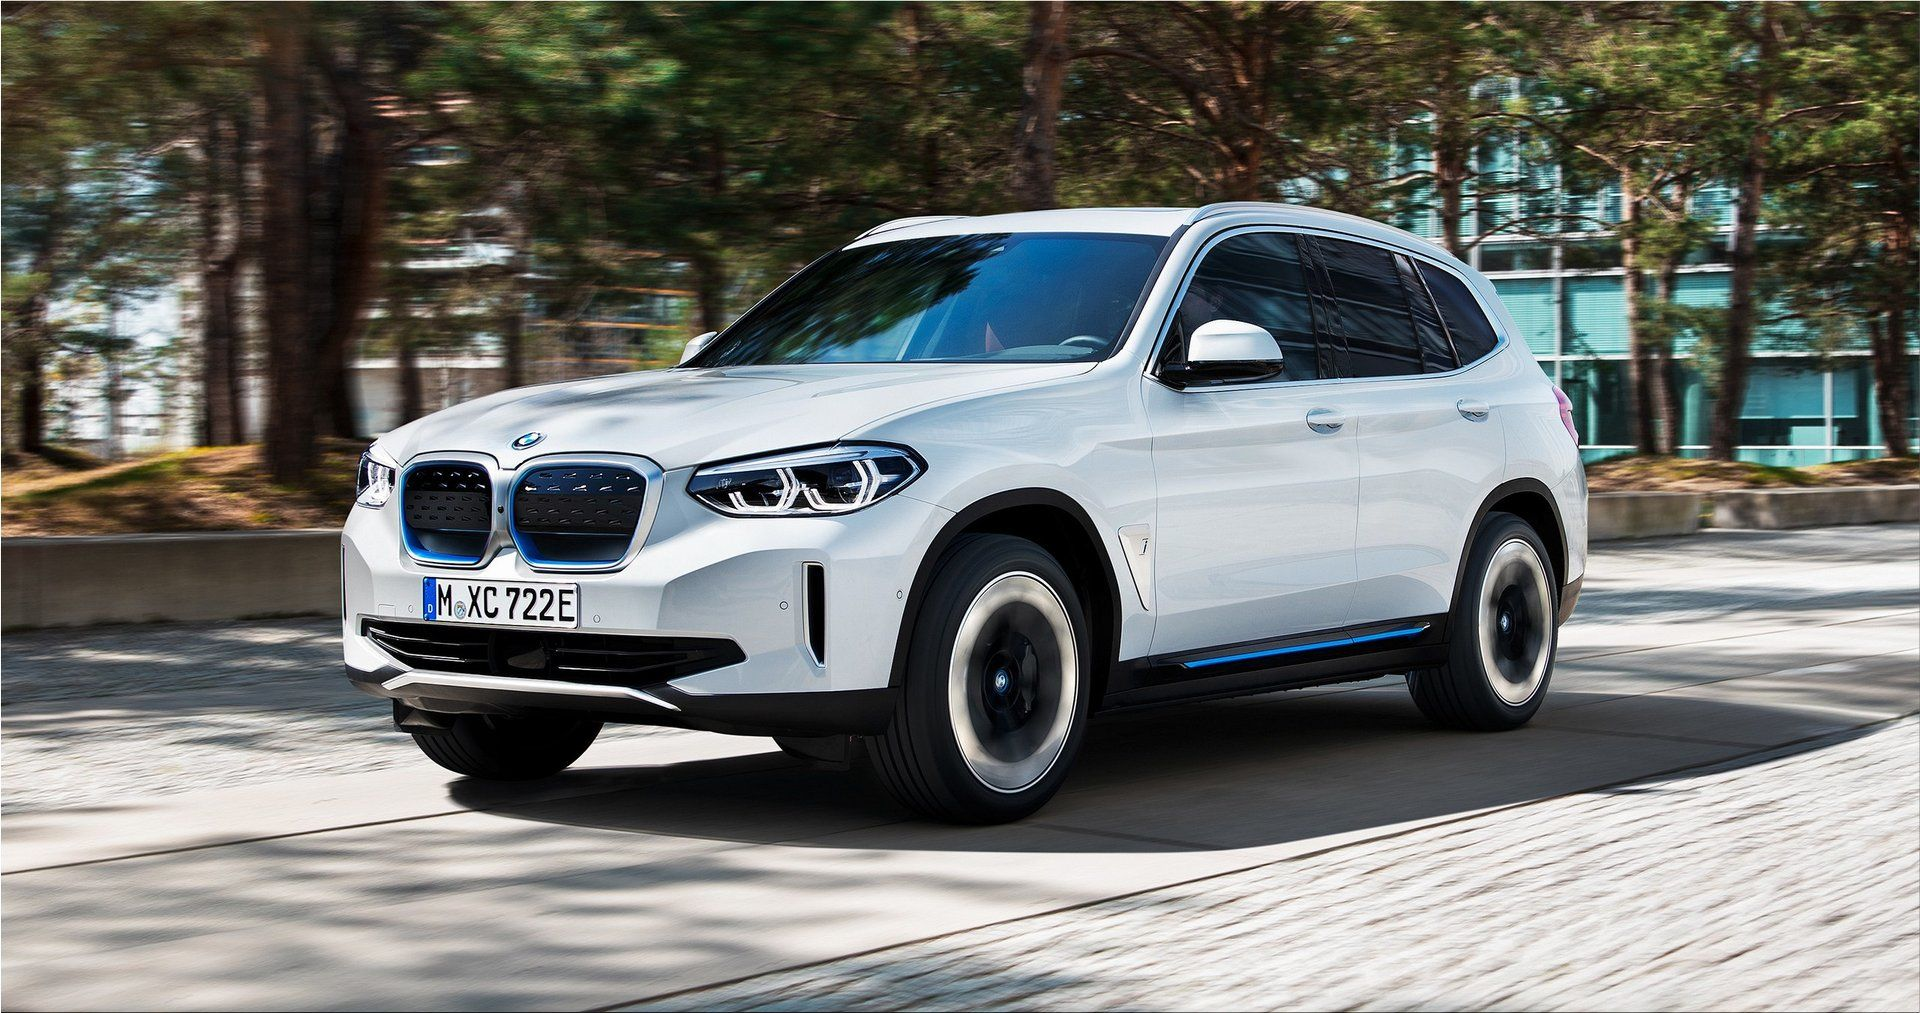 The new BMW iX3 electric SUV - specs and pictures |Electric Cars|Electric Hunter